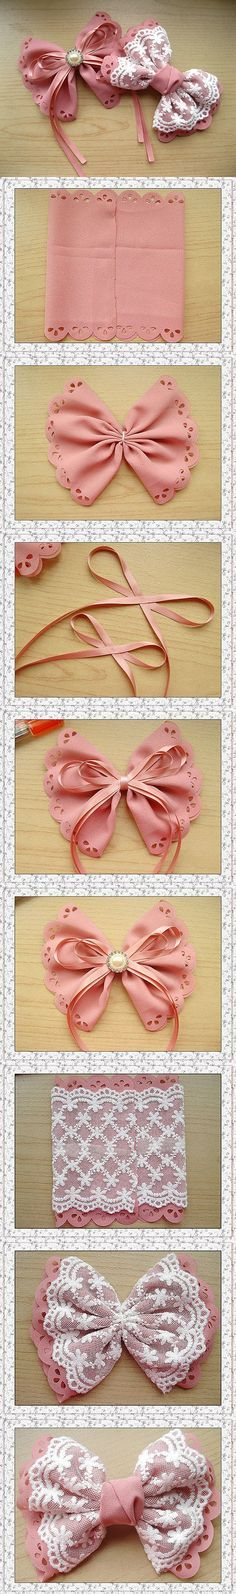 These fast and easy bows show just how easy it is to make extravagant bows for your hair or to decorate. Apply these to a clip, comb, or headband for super cute hair, or attach them to a box, purse, or whatever else you can think of for a custom look to...